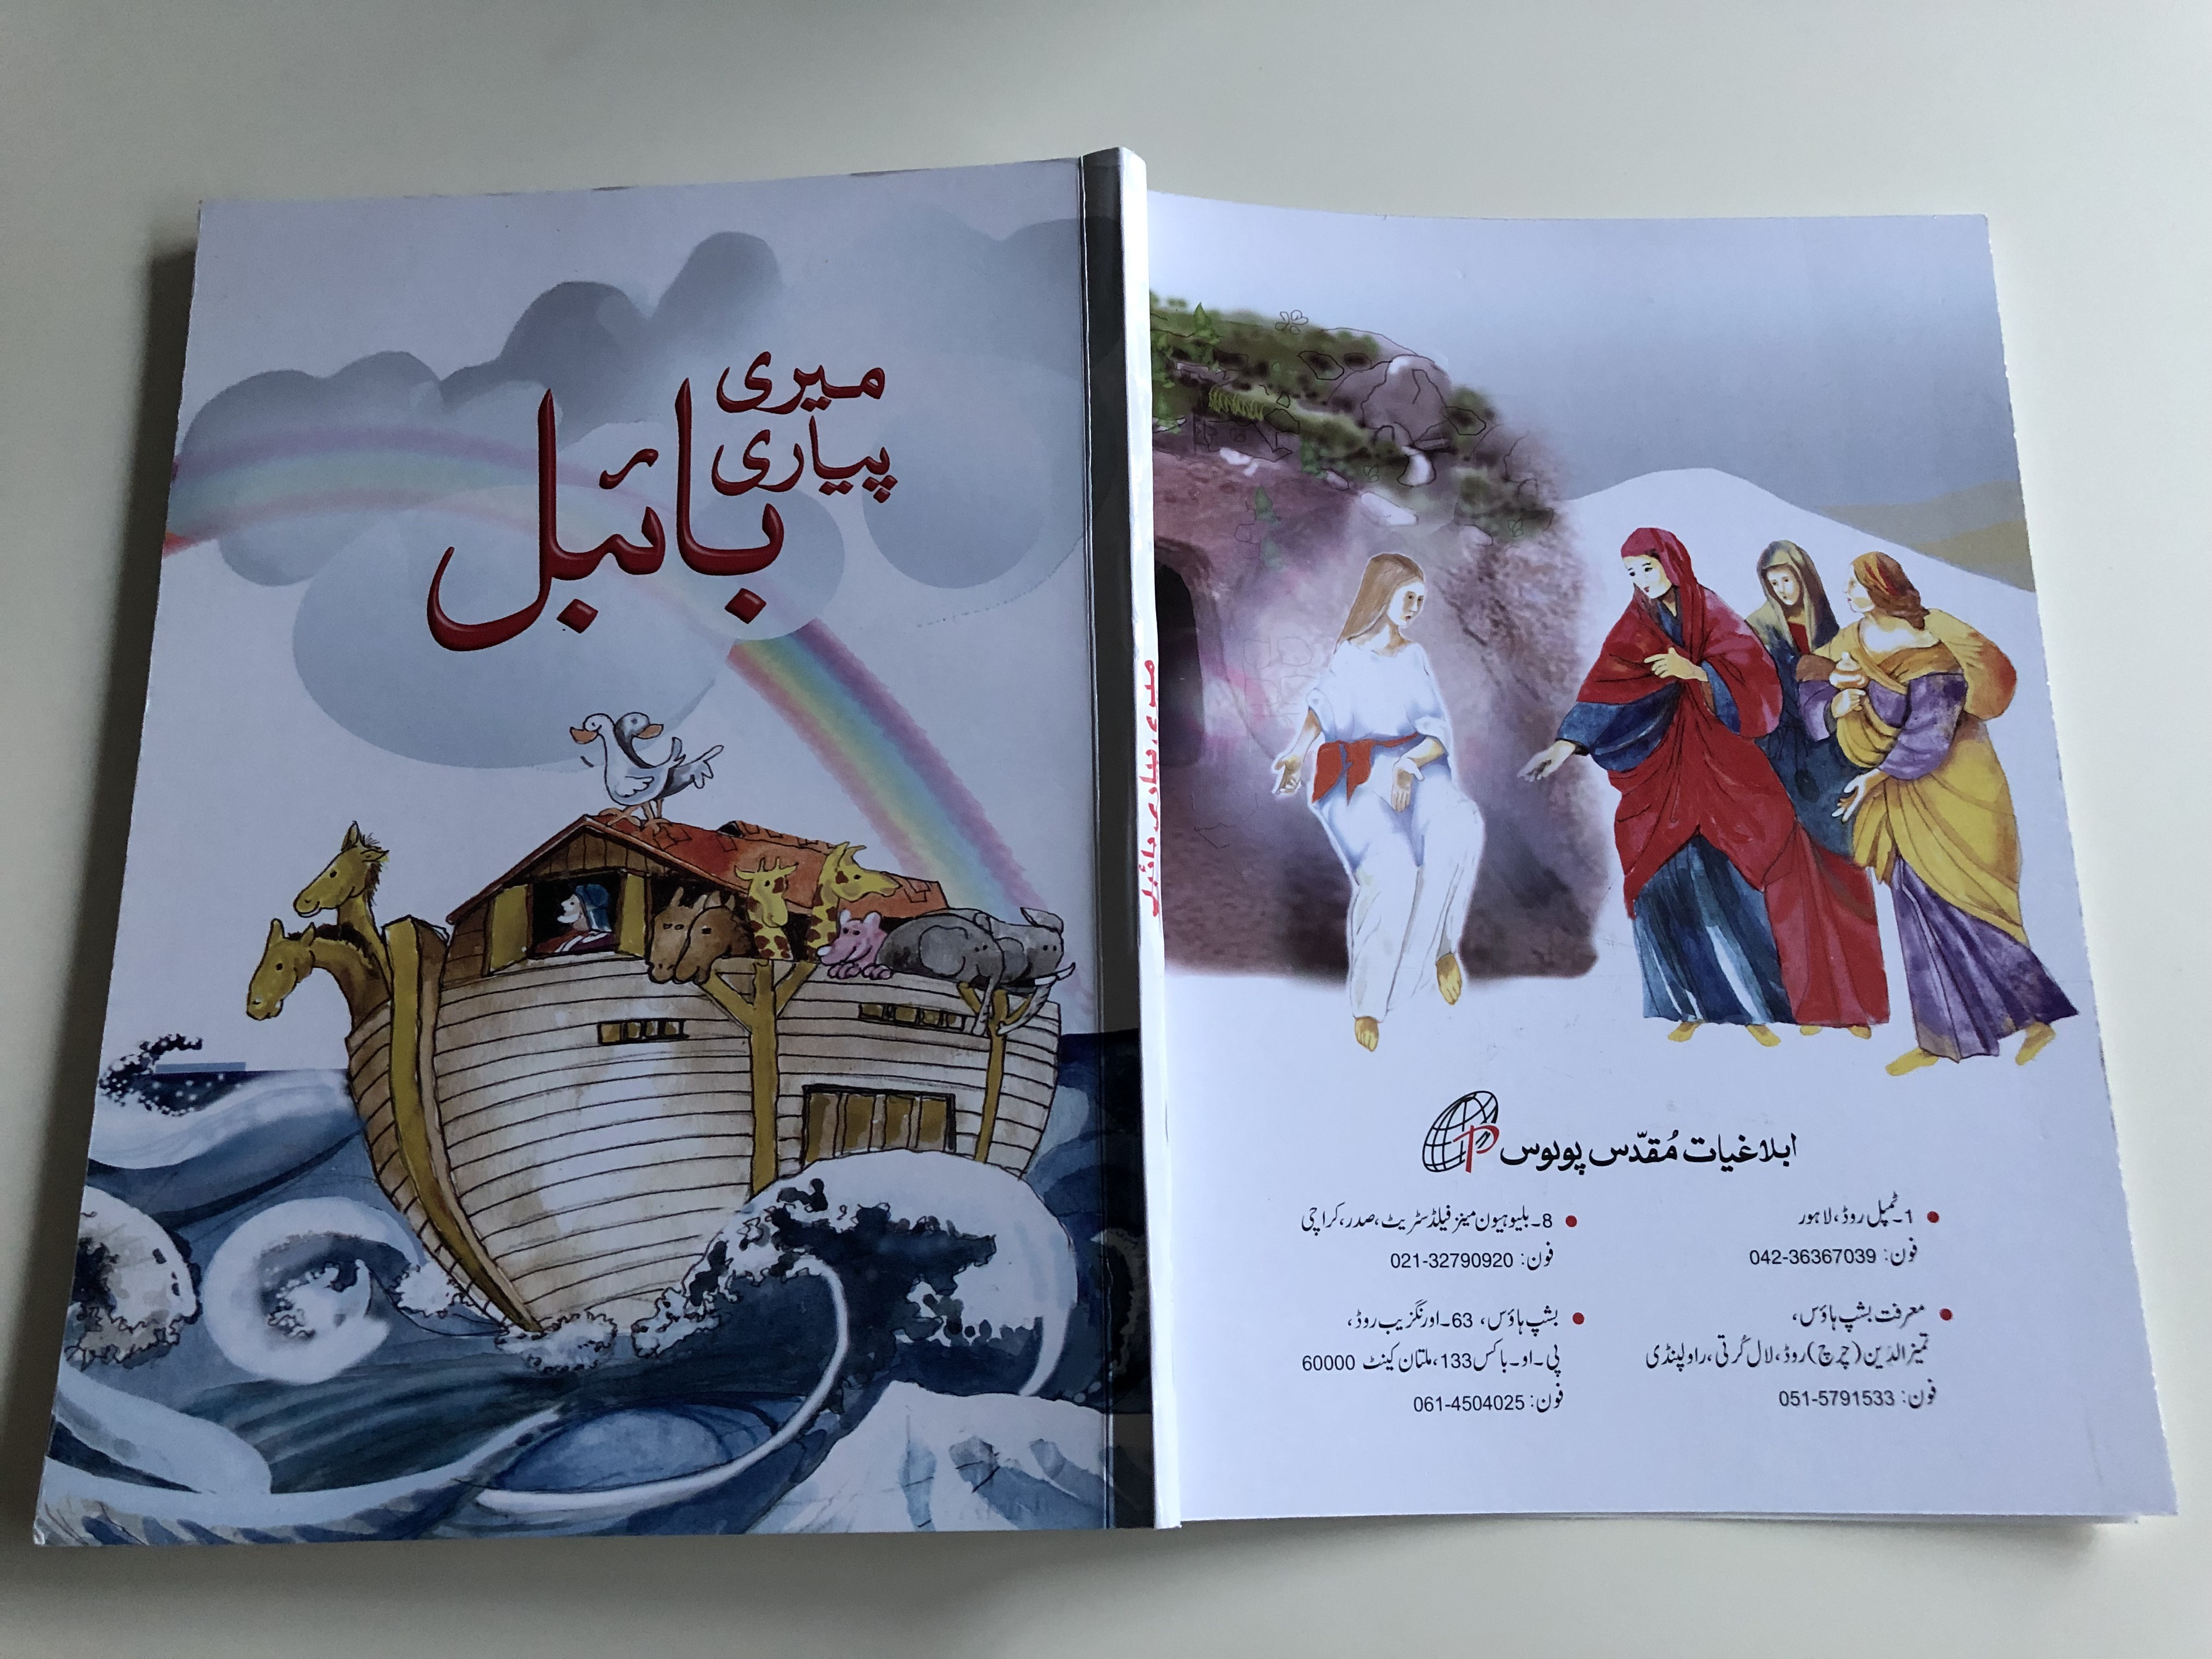 urdu-children-s-picture-bible-st.-paul-communication-centres-pakistan-paperback-2016-color-illustrations-great-gift-for-children-13-.jpg